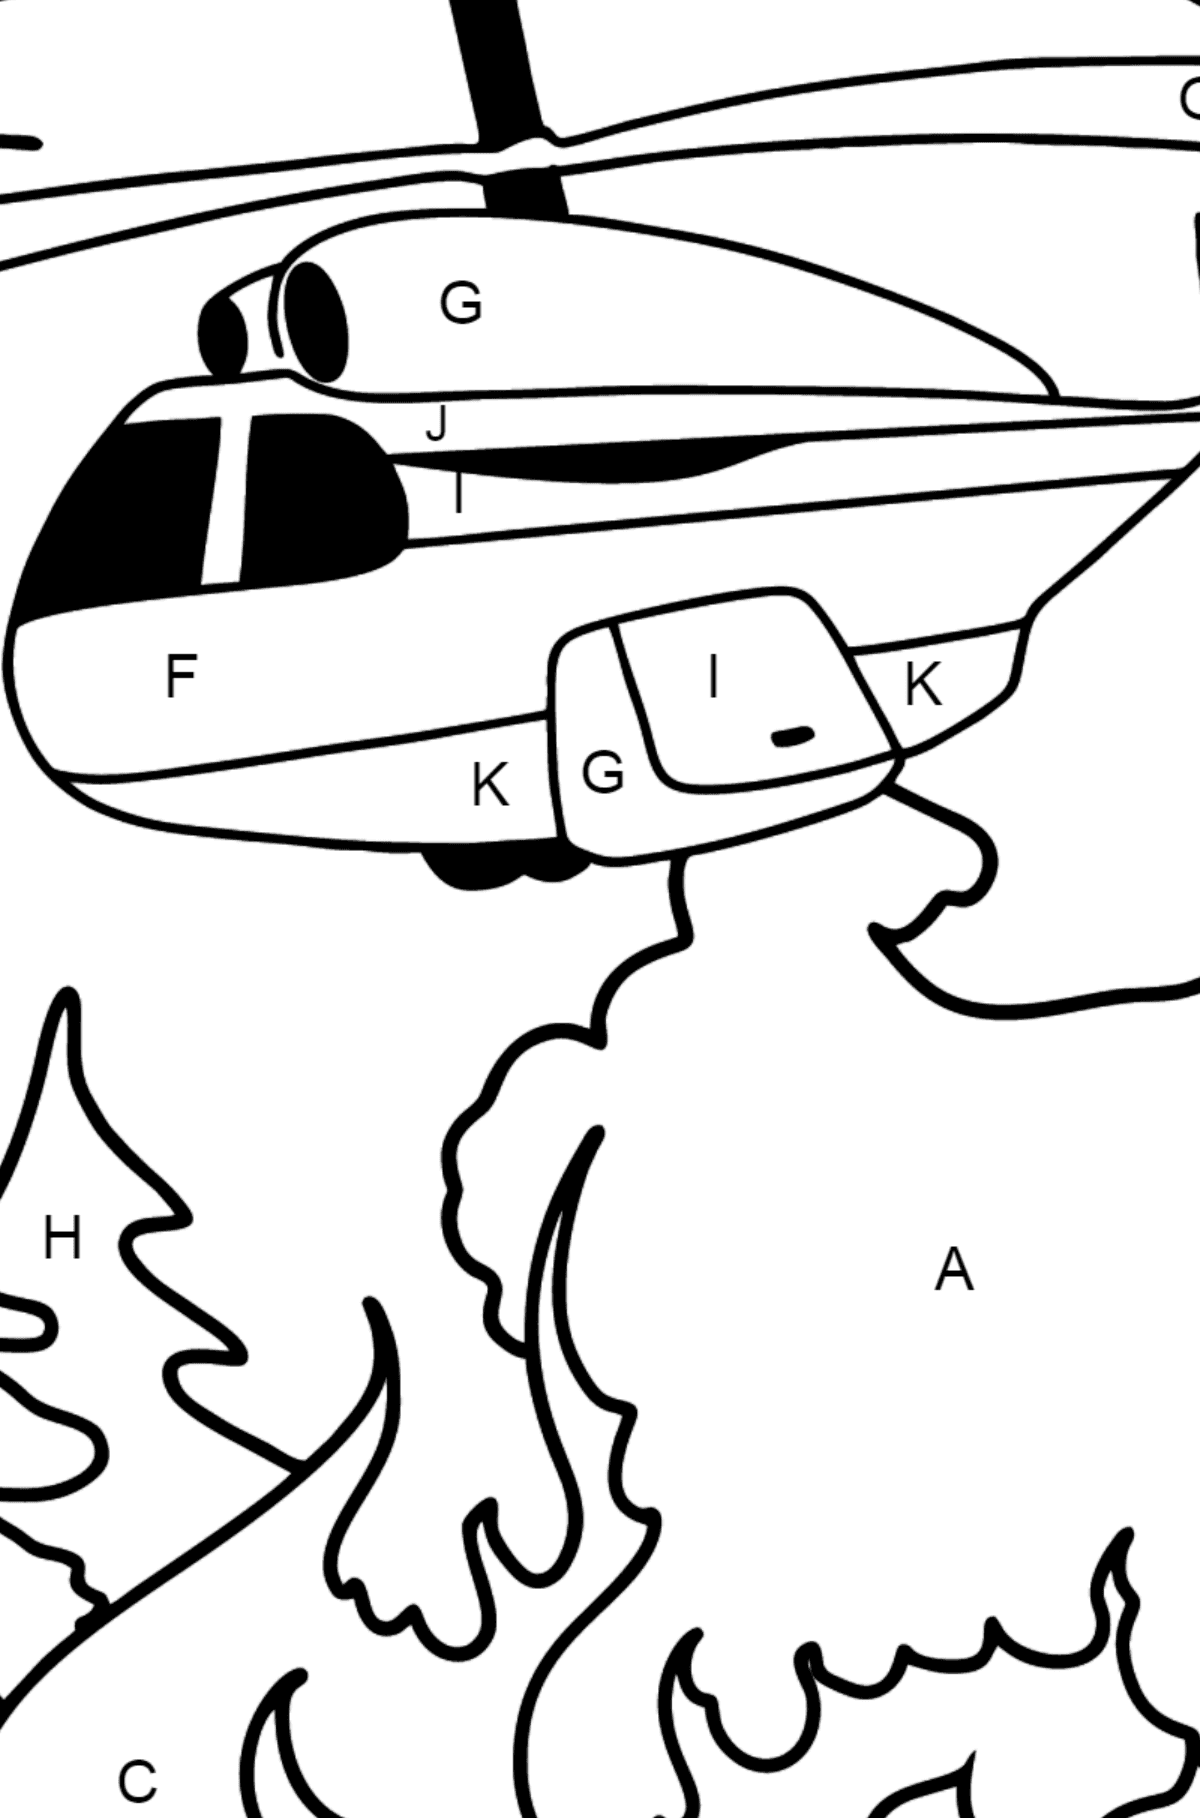 Helicopter Extinguishing Fire coloring page - Coloring by Letters for Kids